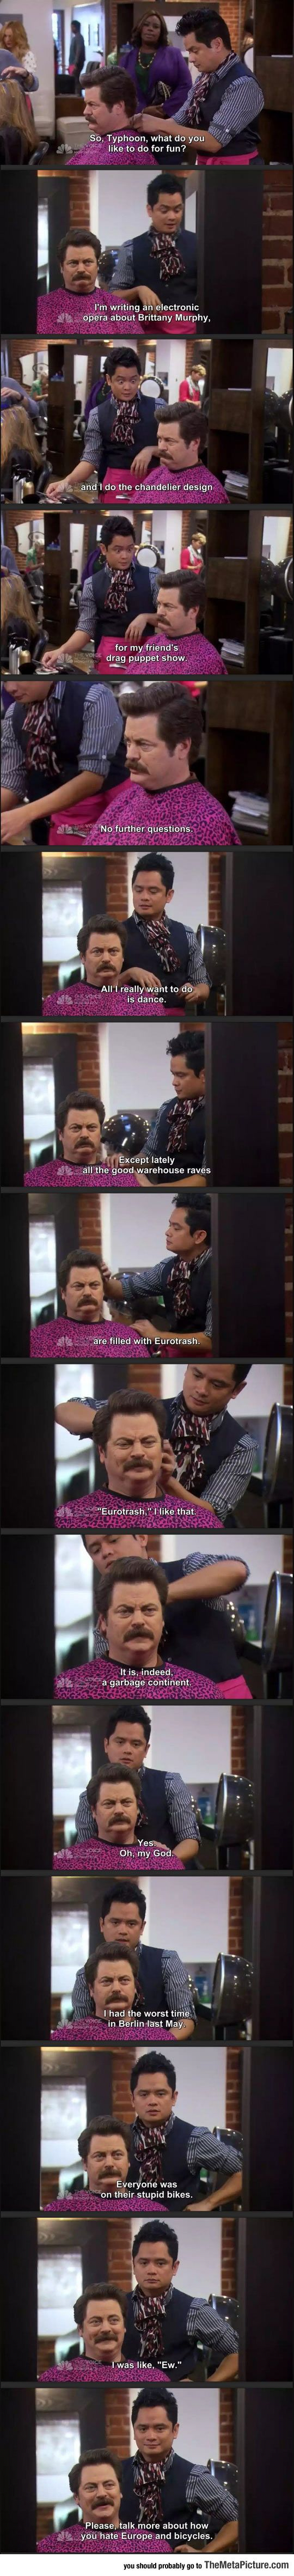 Ron Swanson On Europe